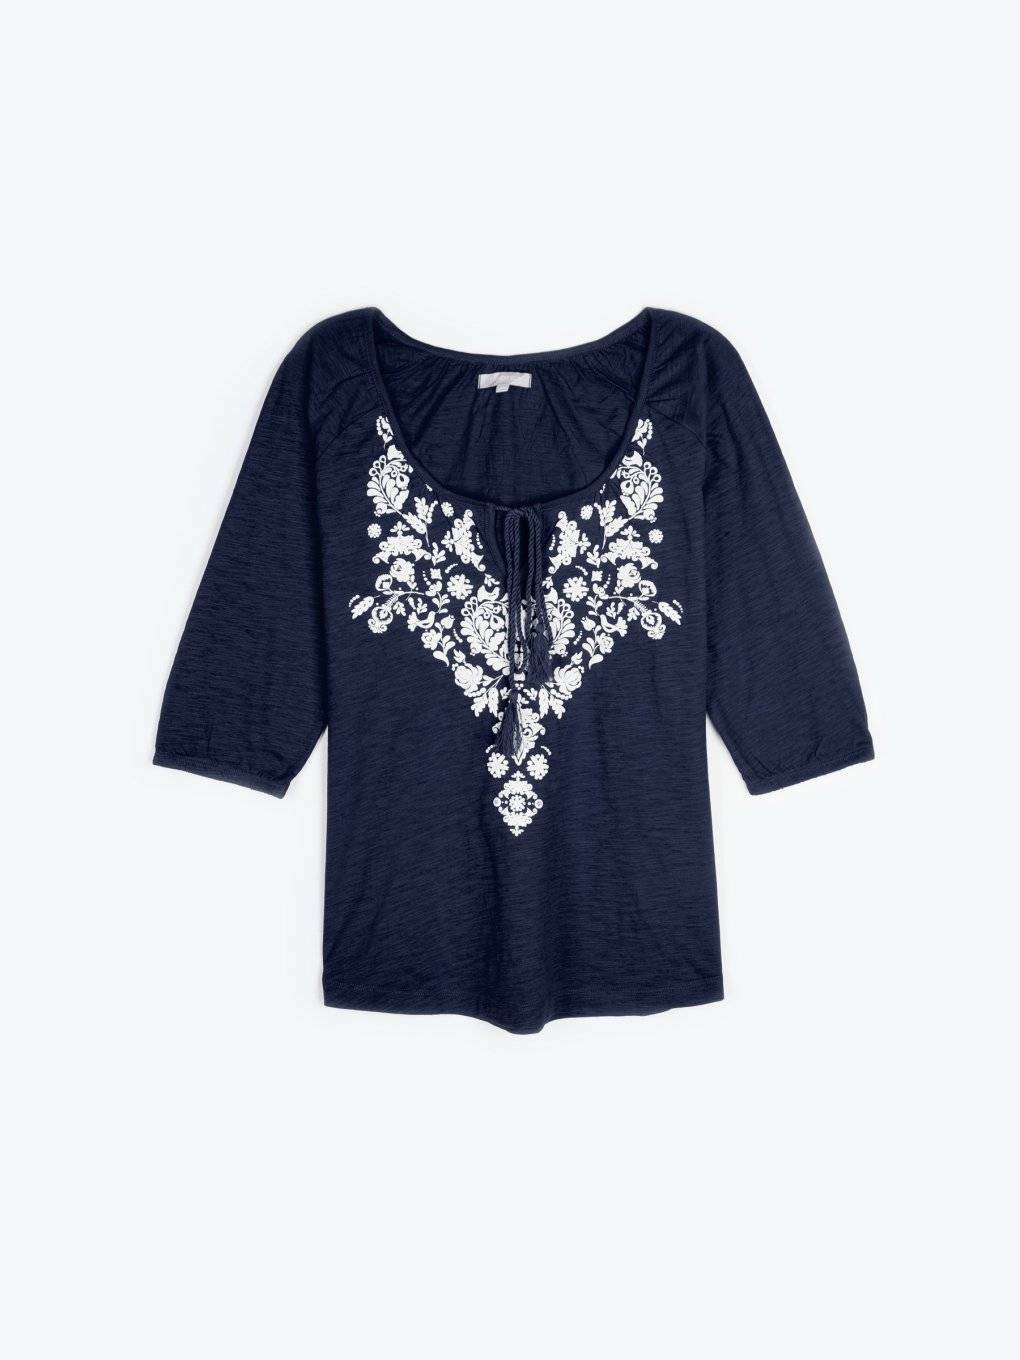 Printed lace-up t-shirt